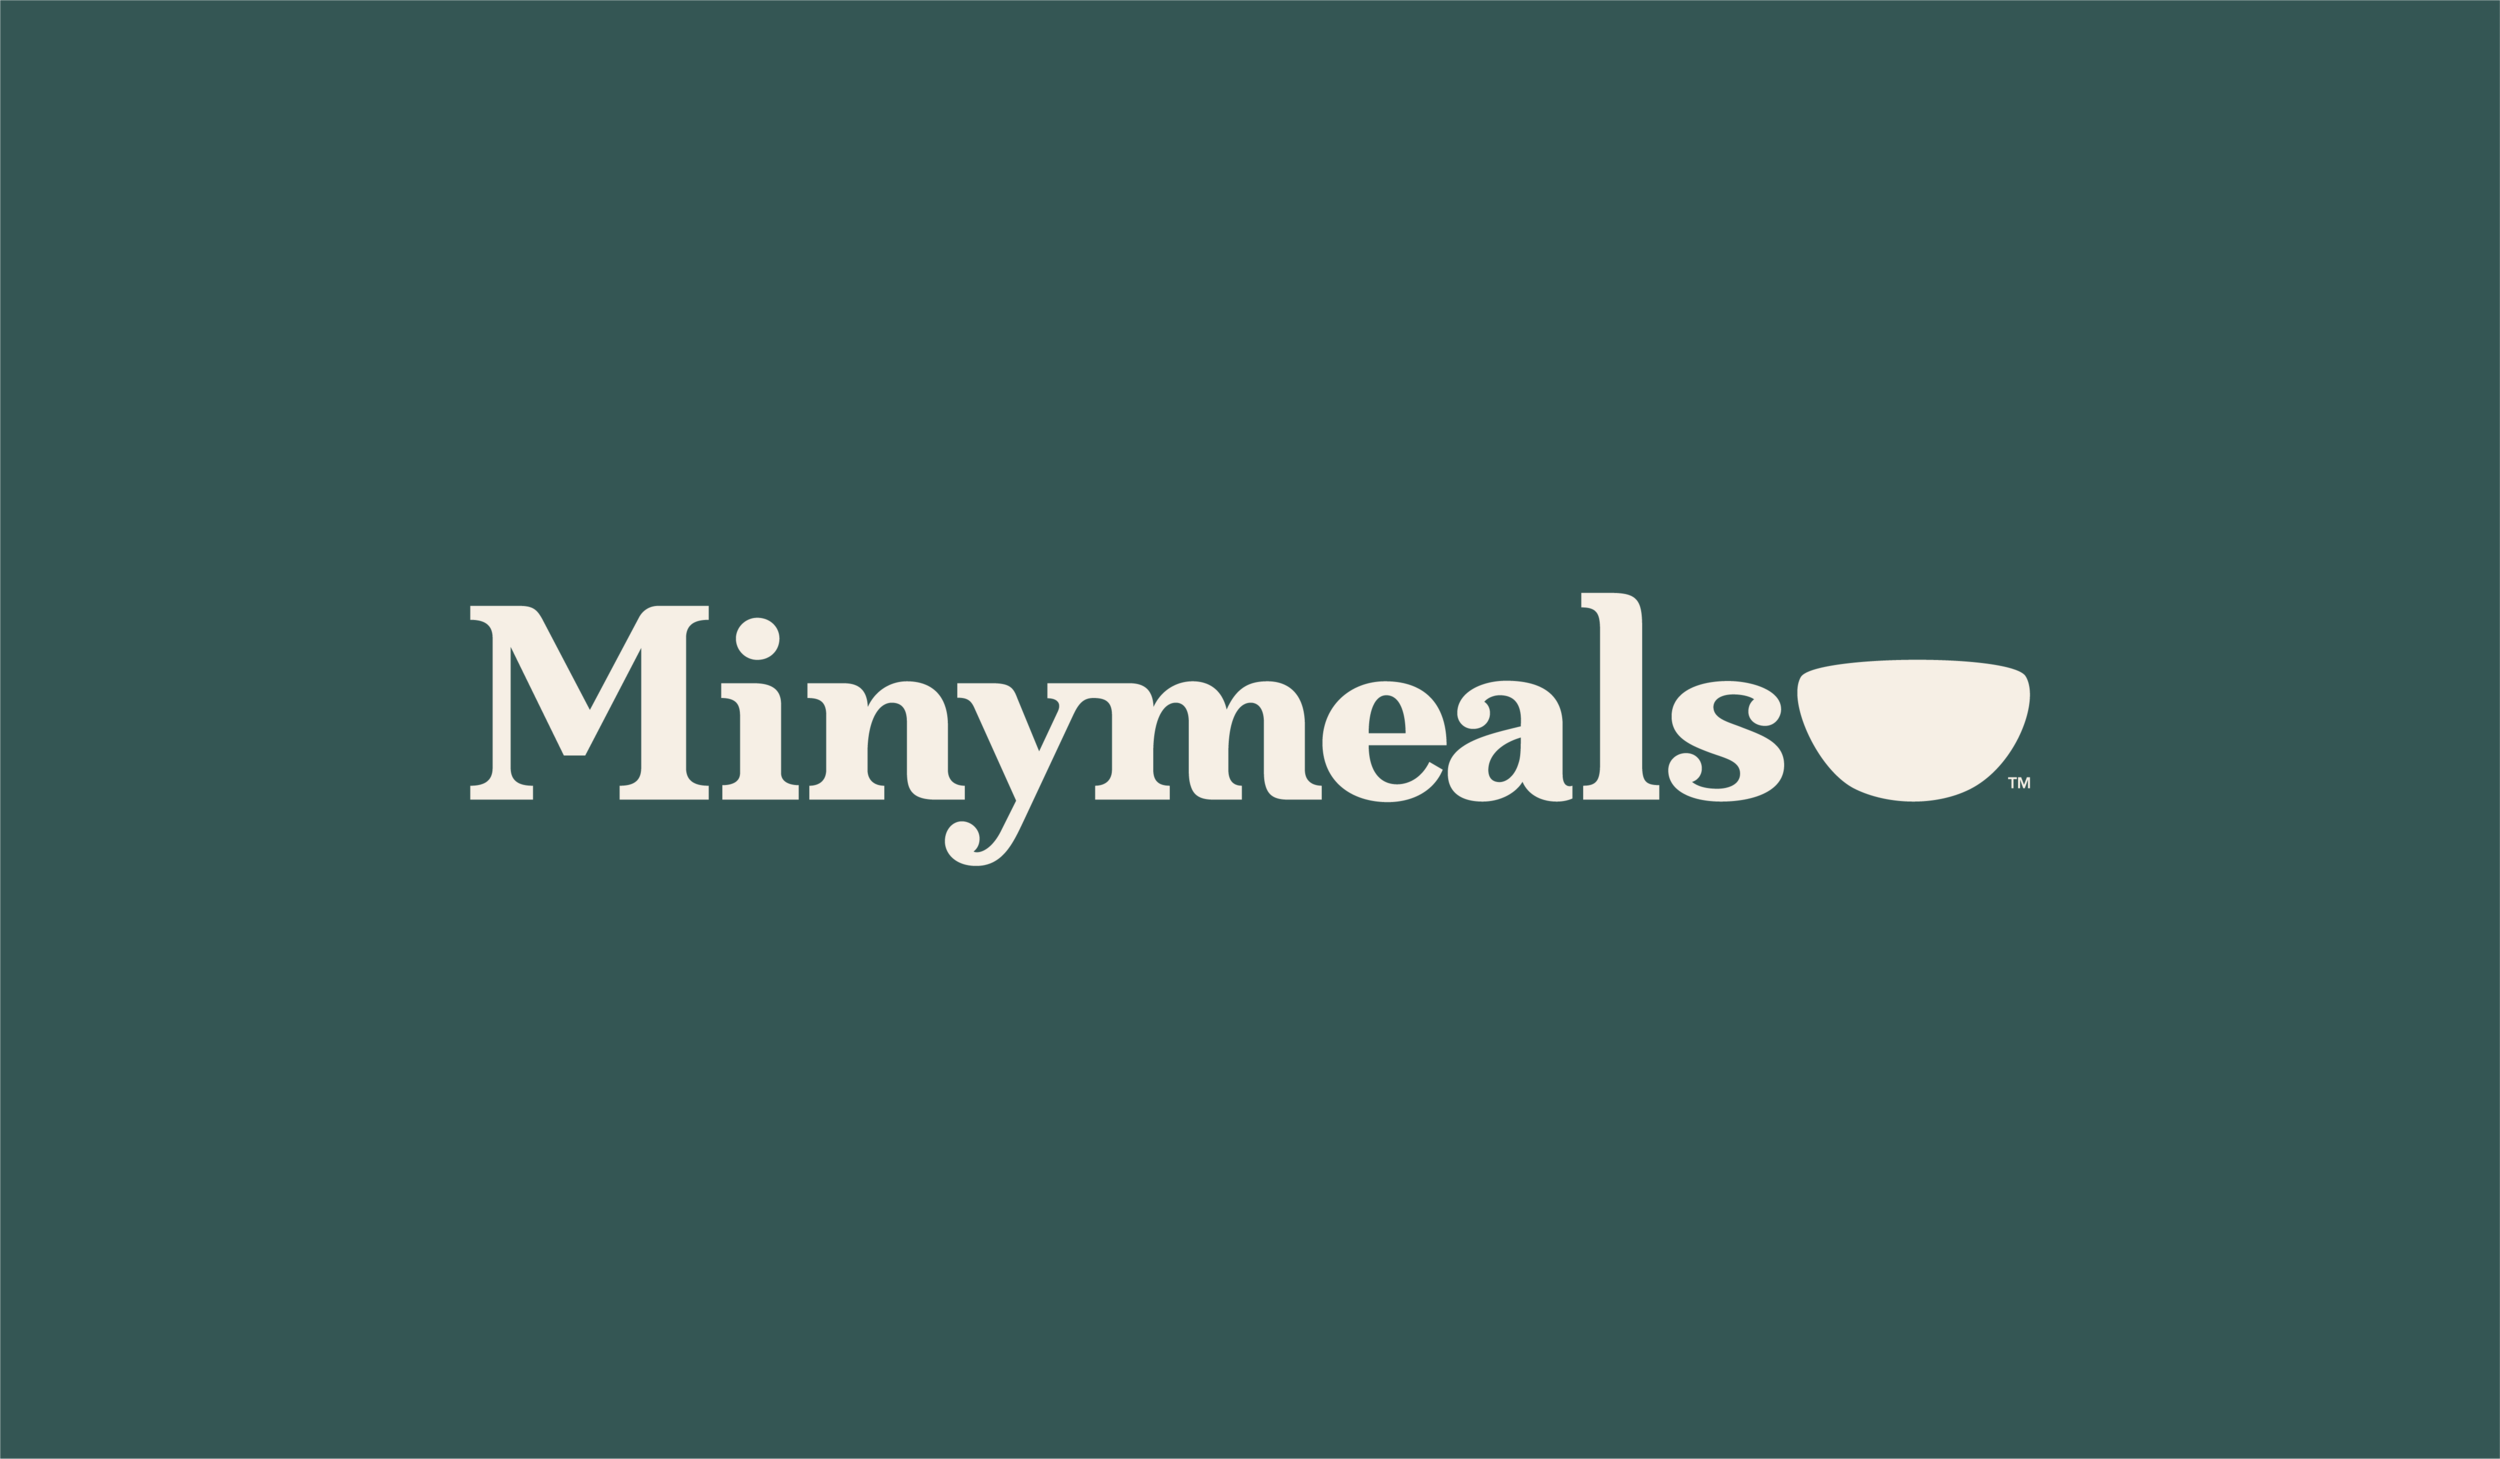 Minymeals Logo with Green Background